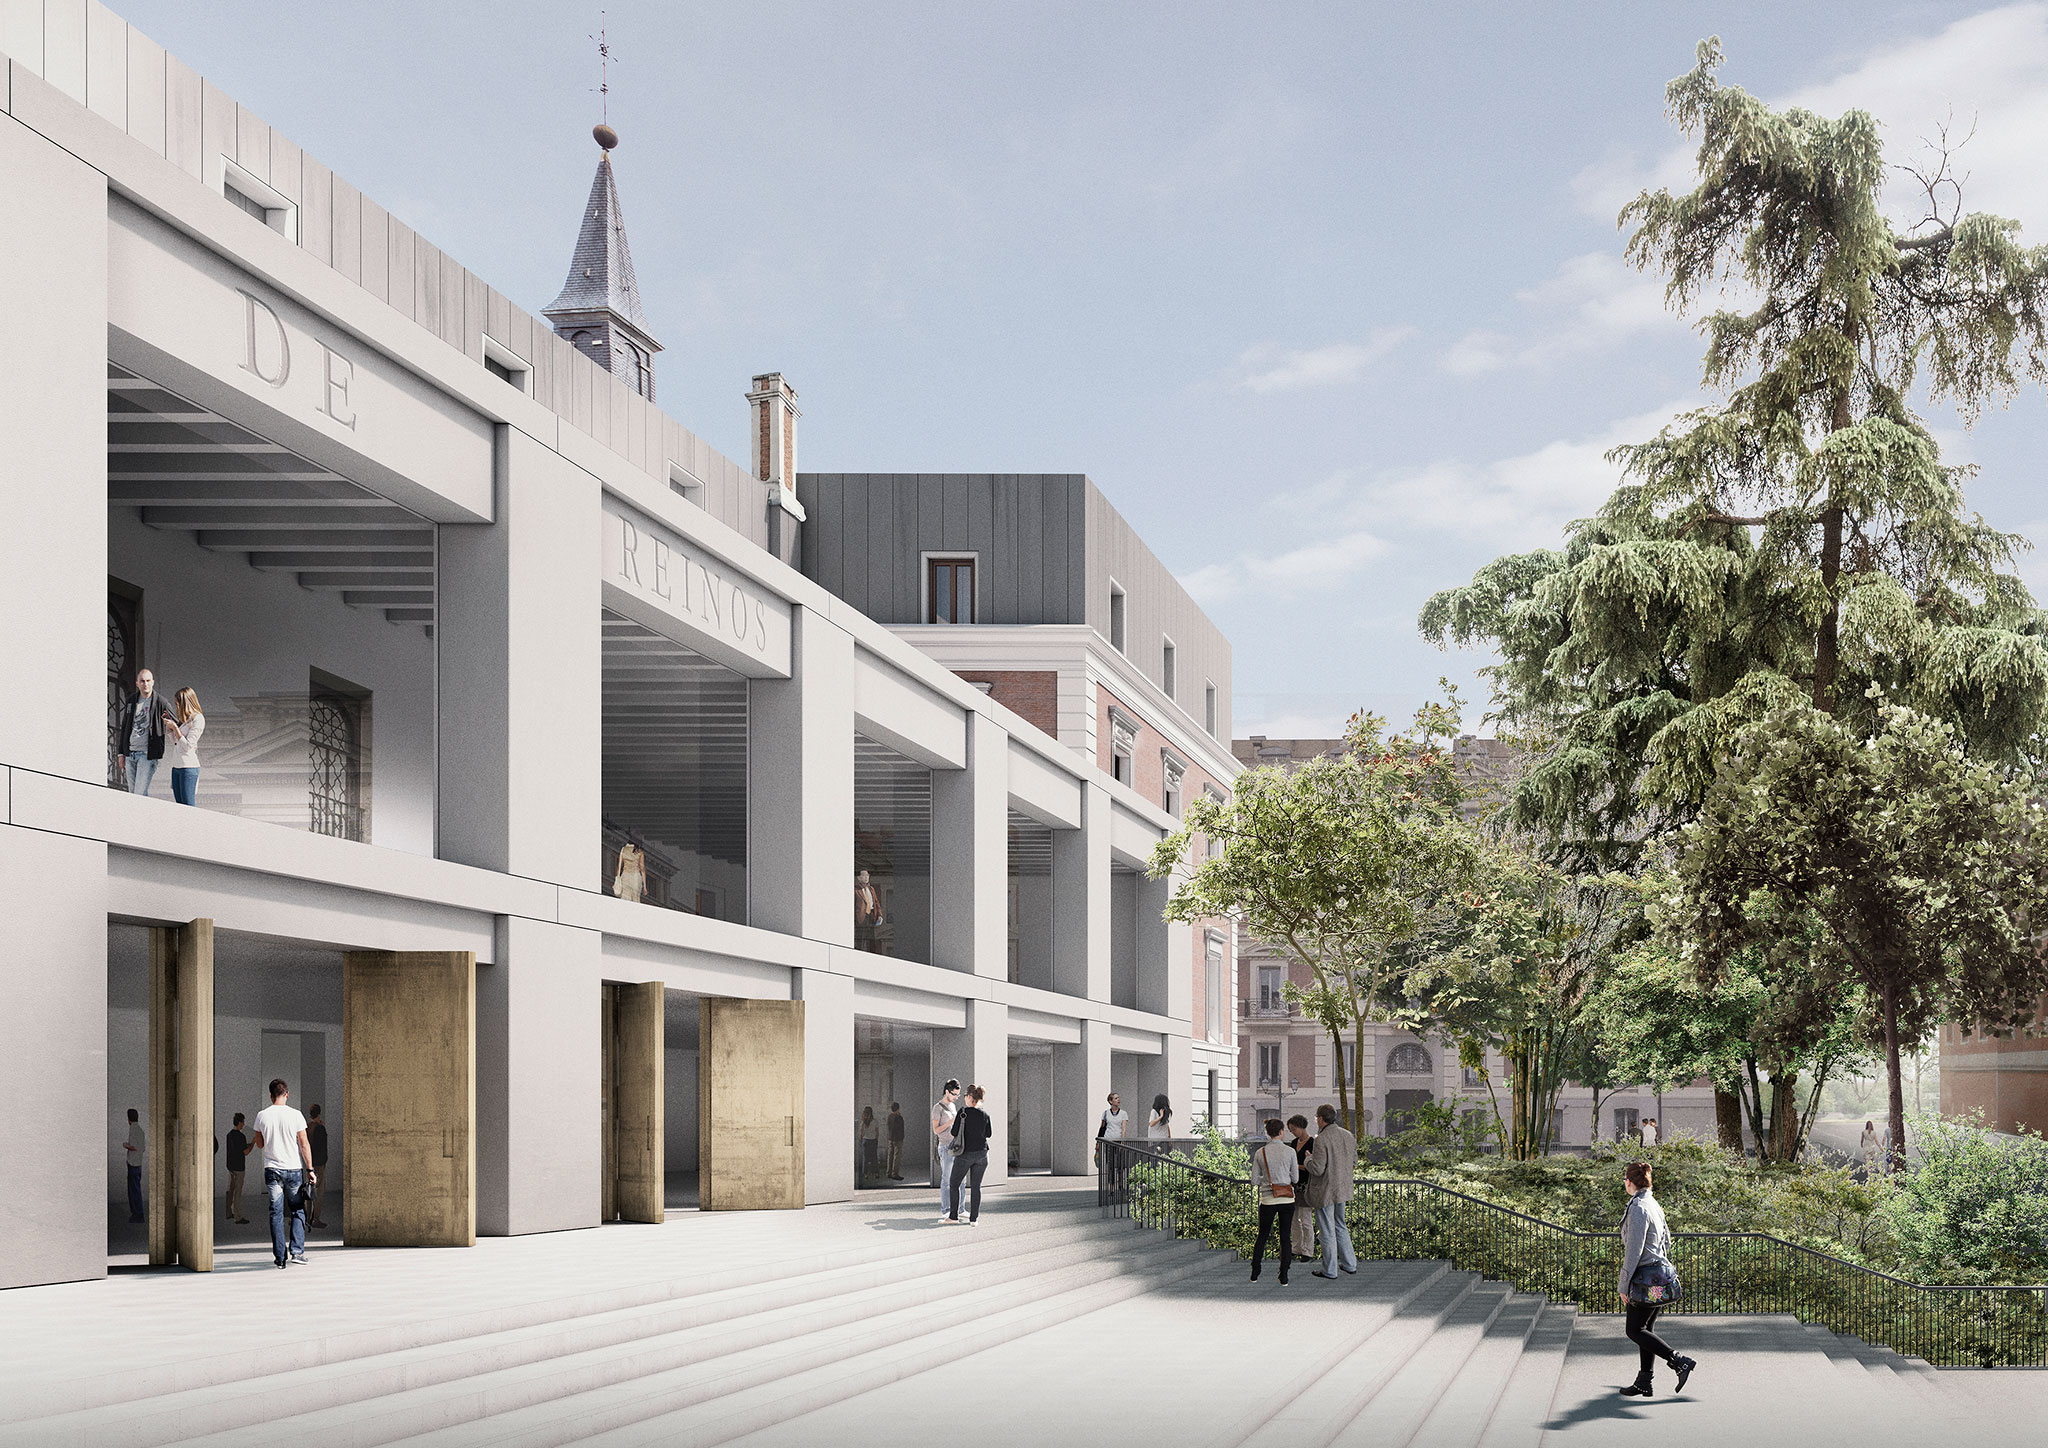 El prado extension el sal n de reinos proposal by david for Chipperfield arquitecto